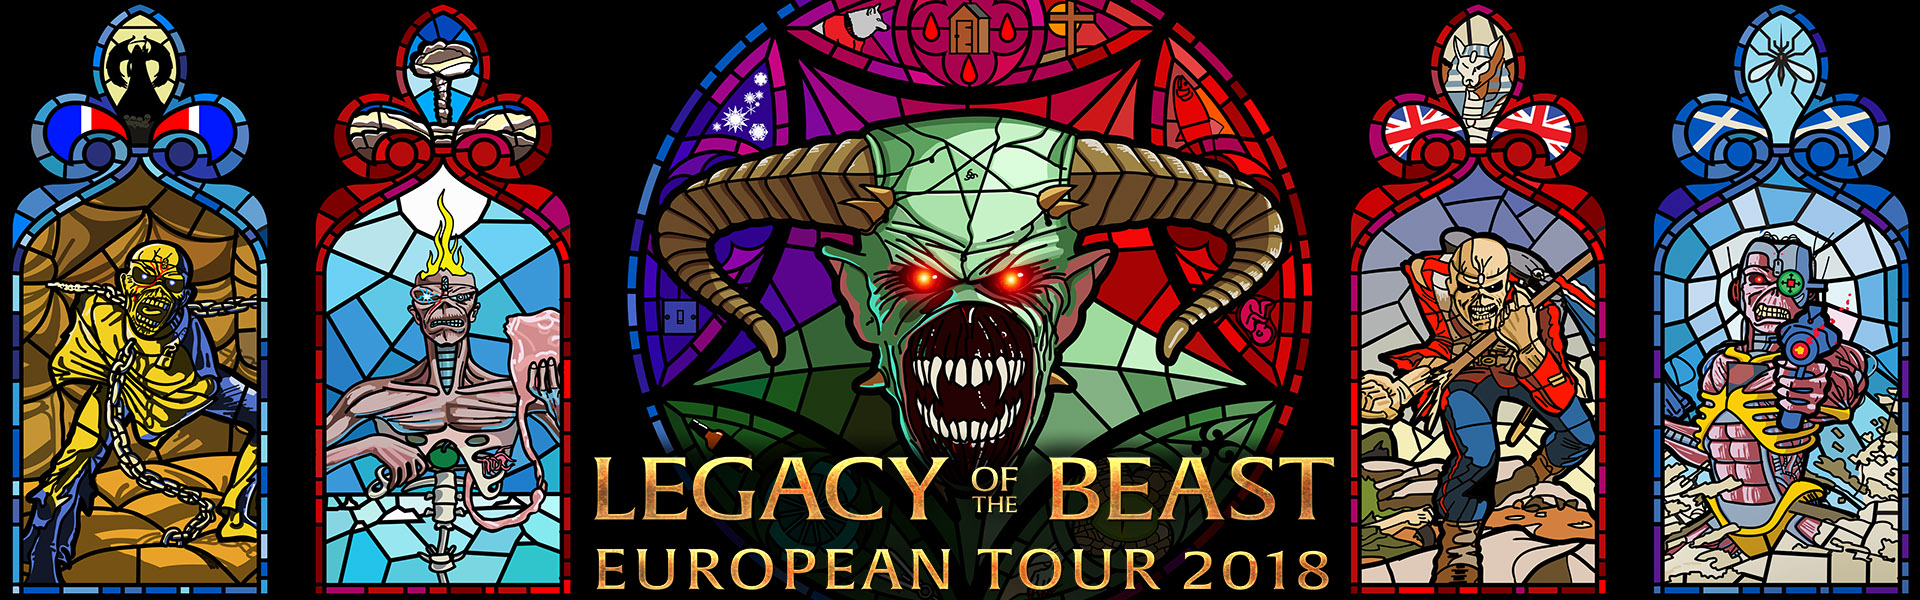 Legacy Of The Beast European Tour 2018 - ON SALE THIS WEEK